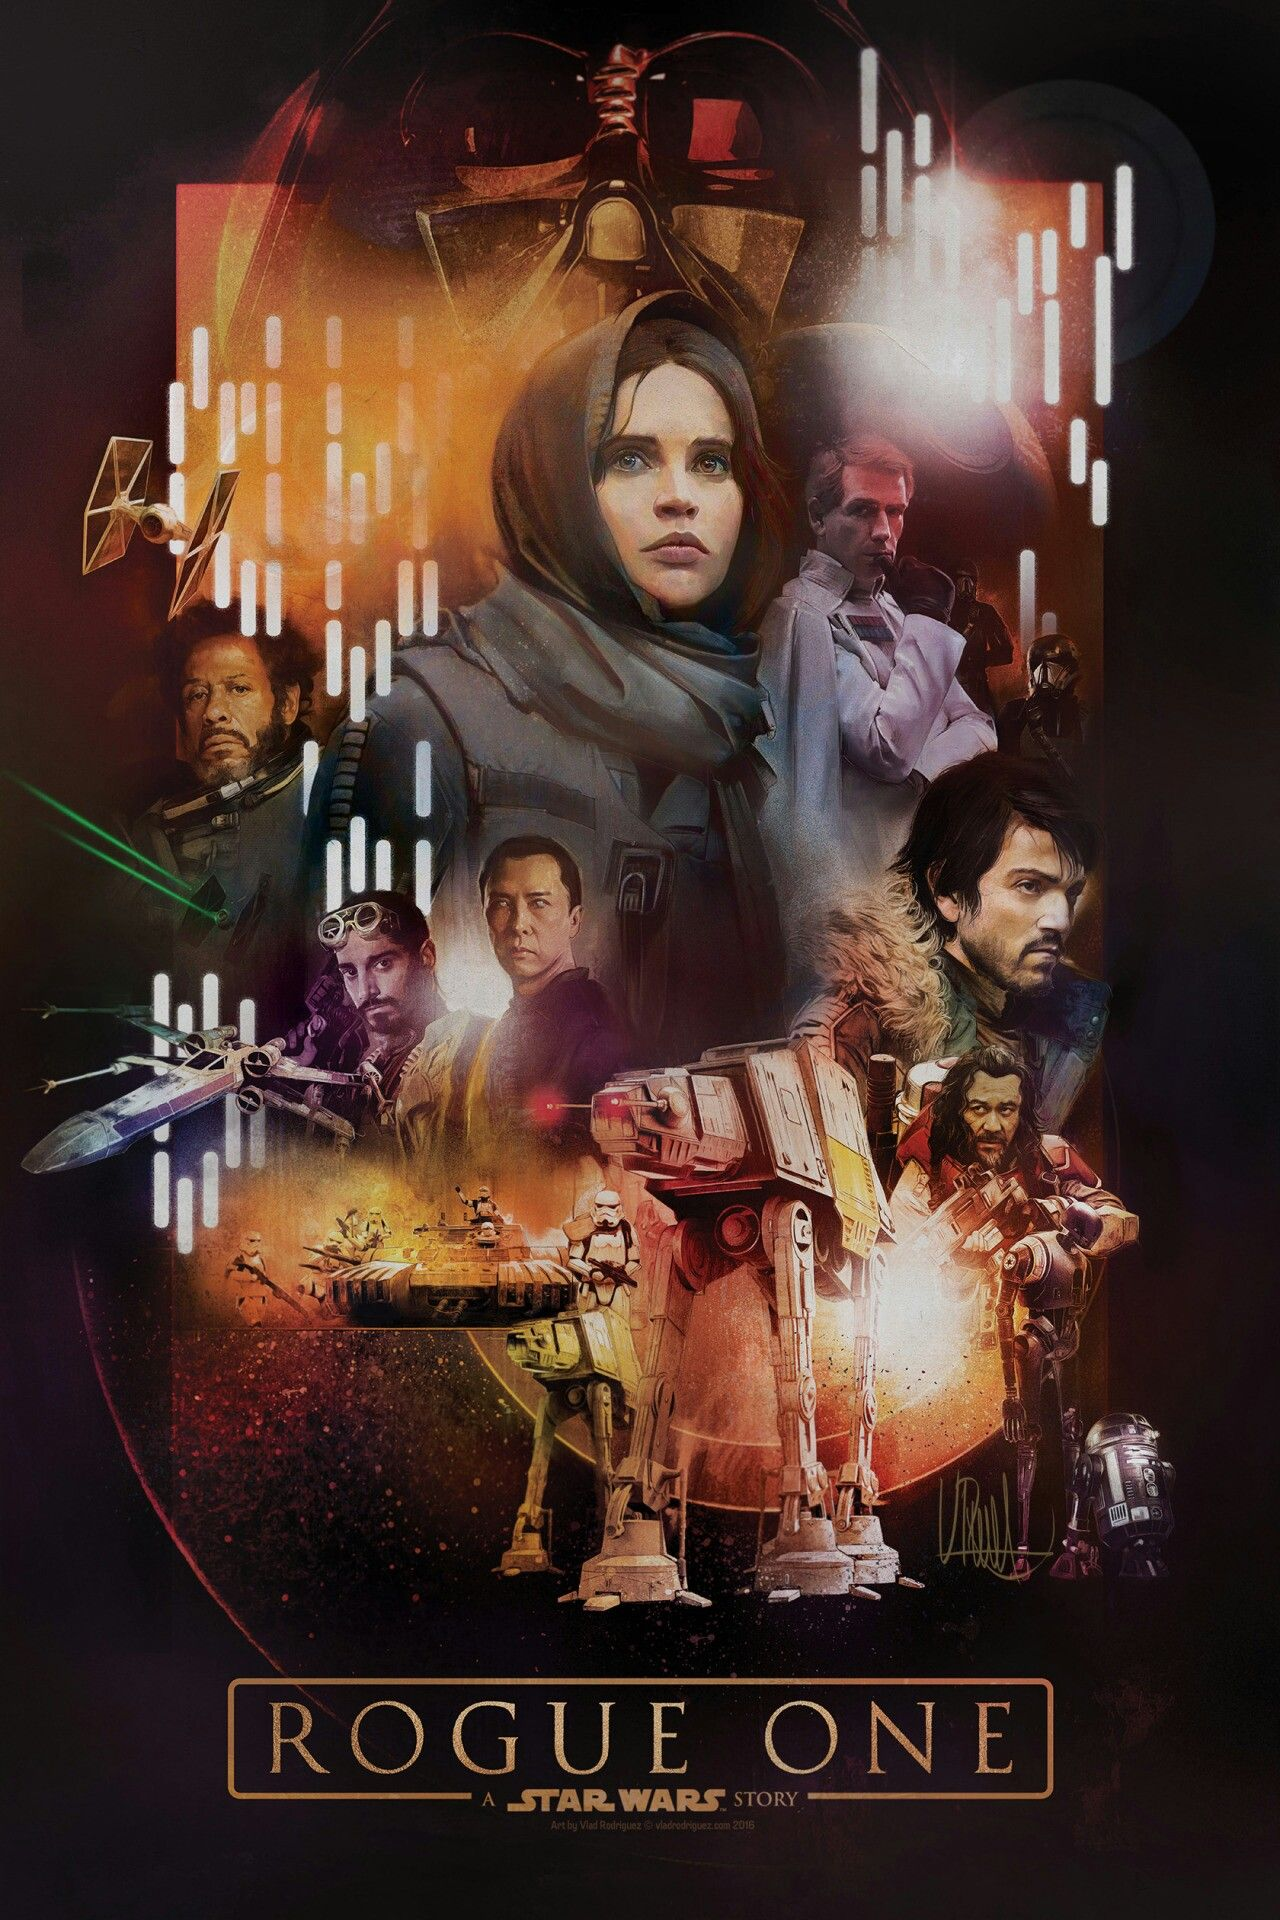 Rogue One A Star Wars Story Image By Charity Knecht Star Wars Pictures Alternative Movie Posters